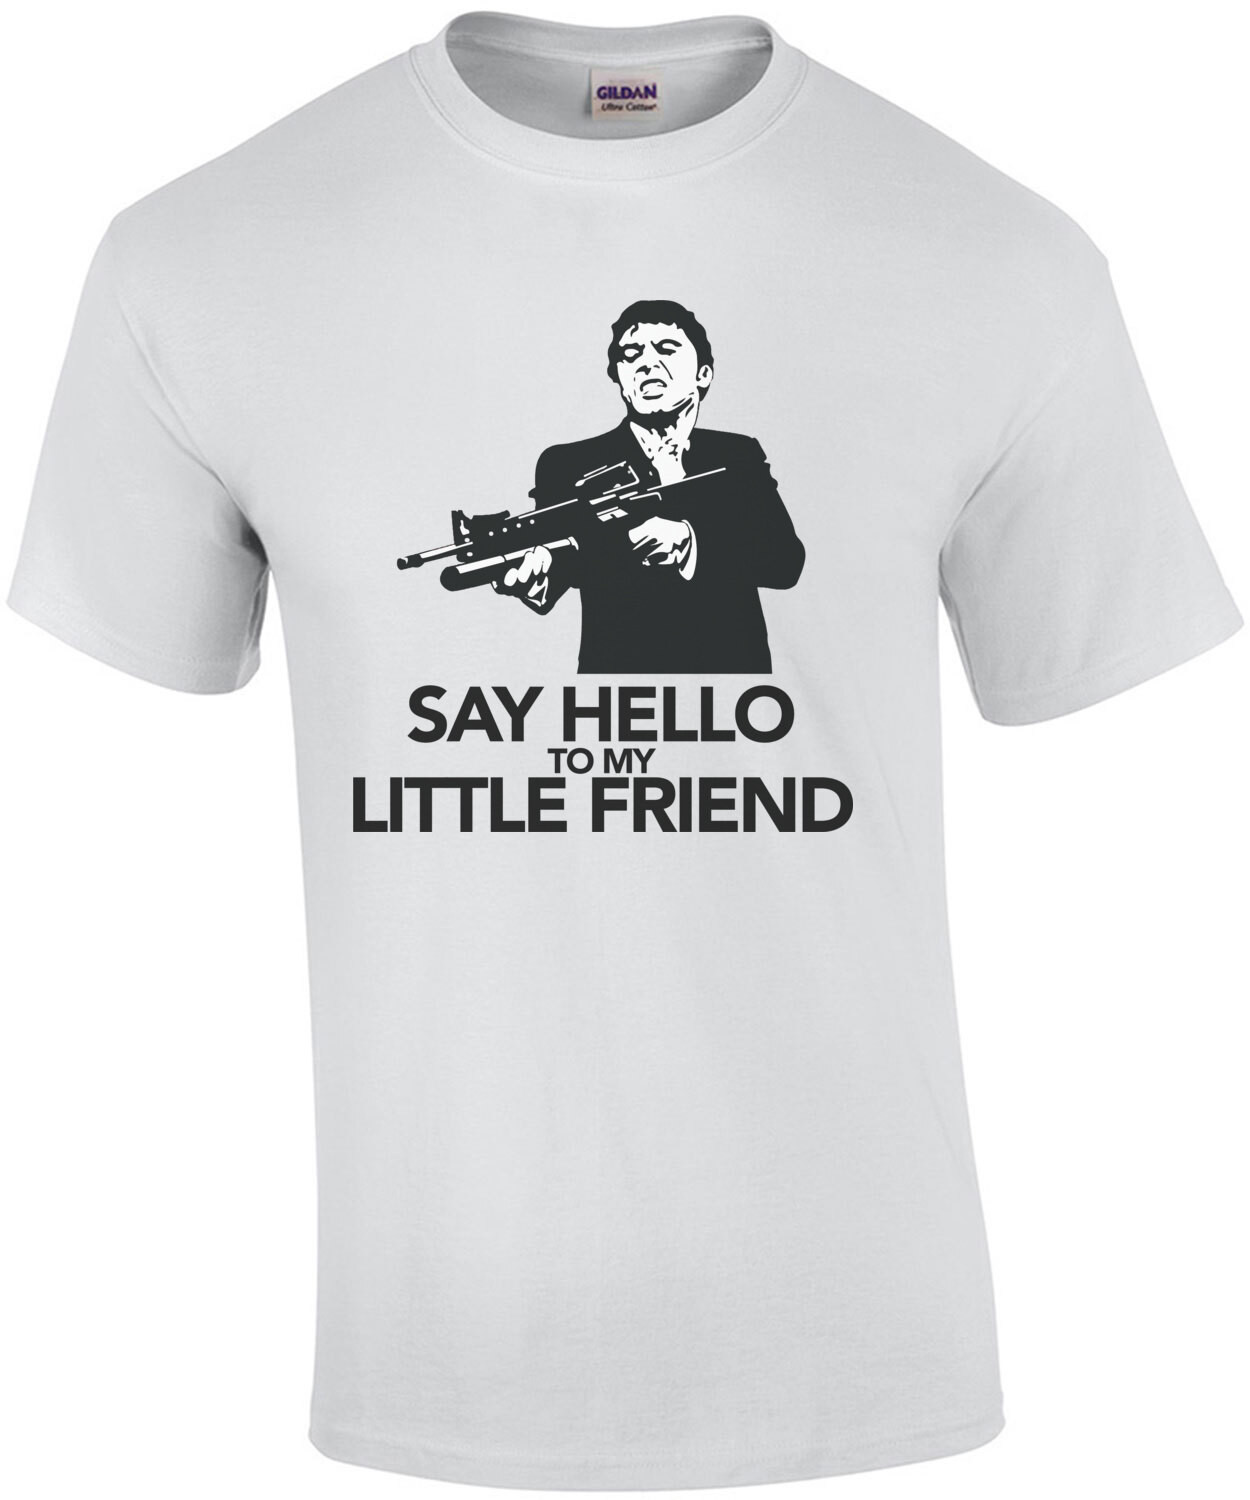 Say Hello to my Little Friend - Al Pacino - Scarface - 80's T-Shirt